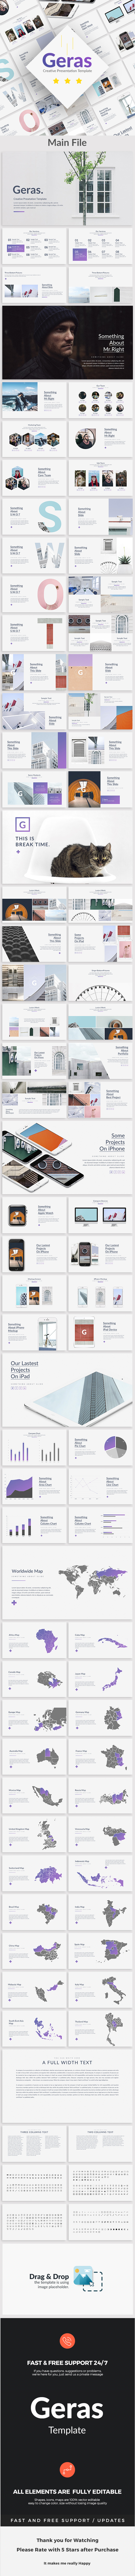 geras creative powerpoint template — powerpoint ppt #ppt #investor, Presentation templates